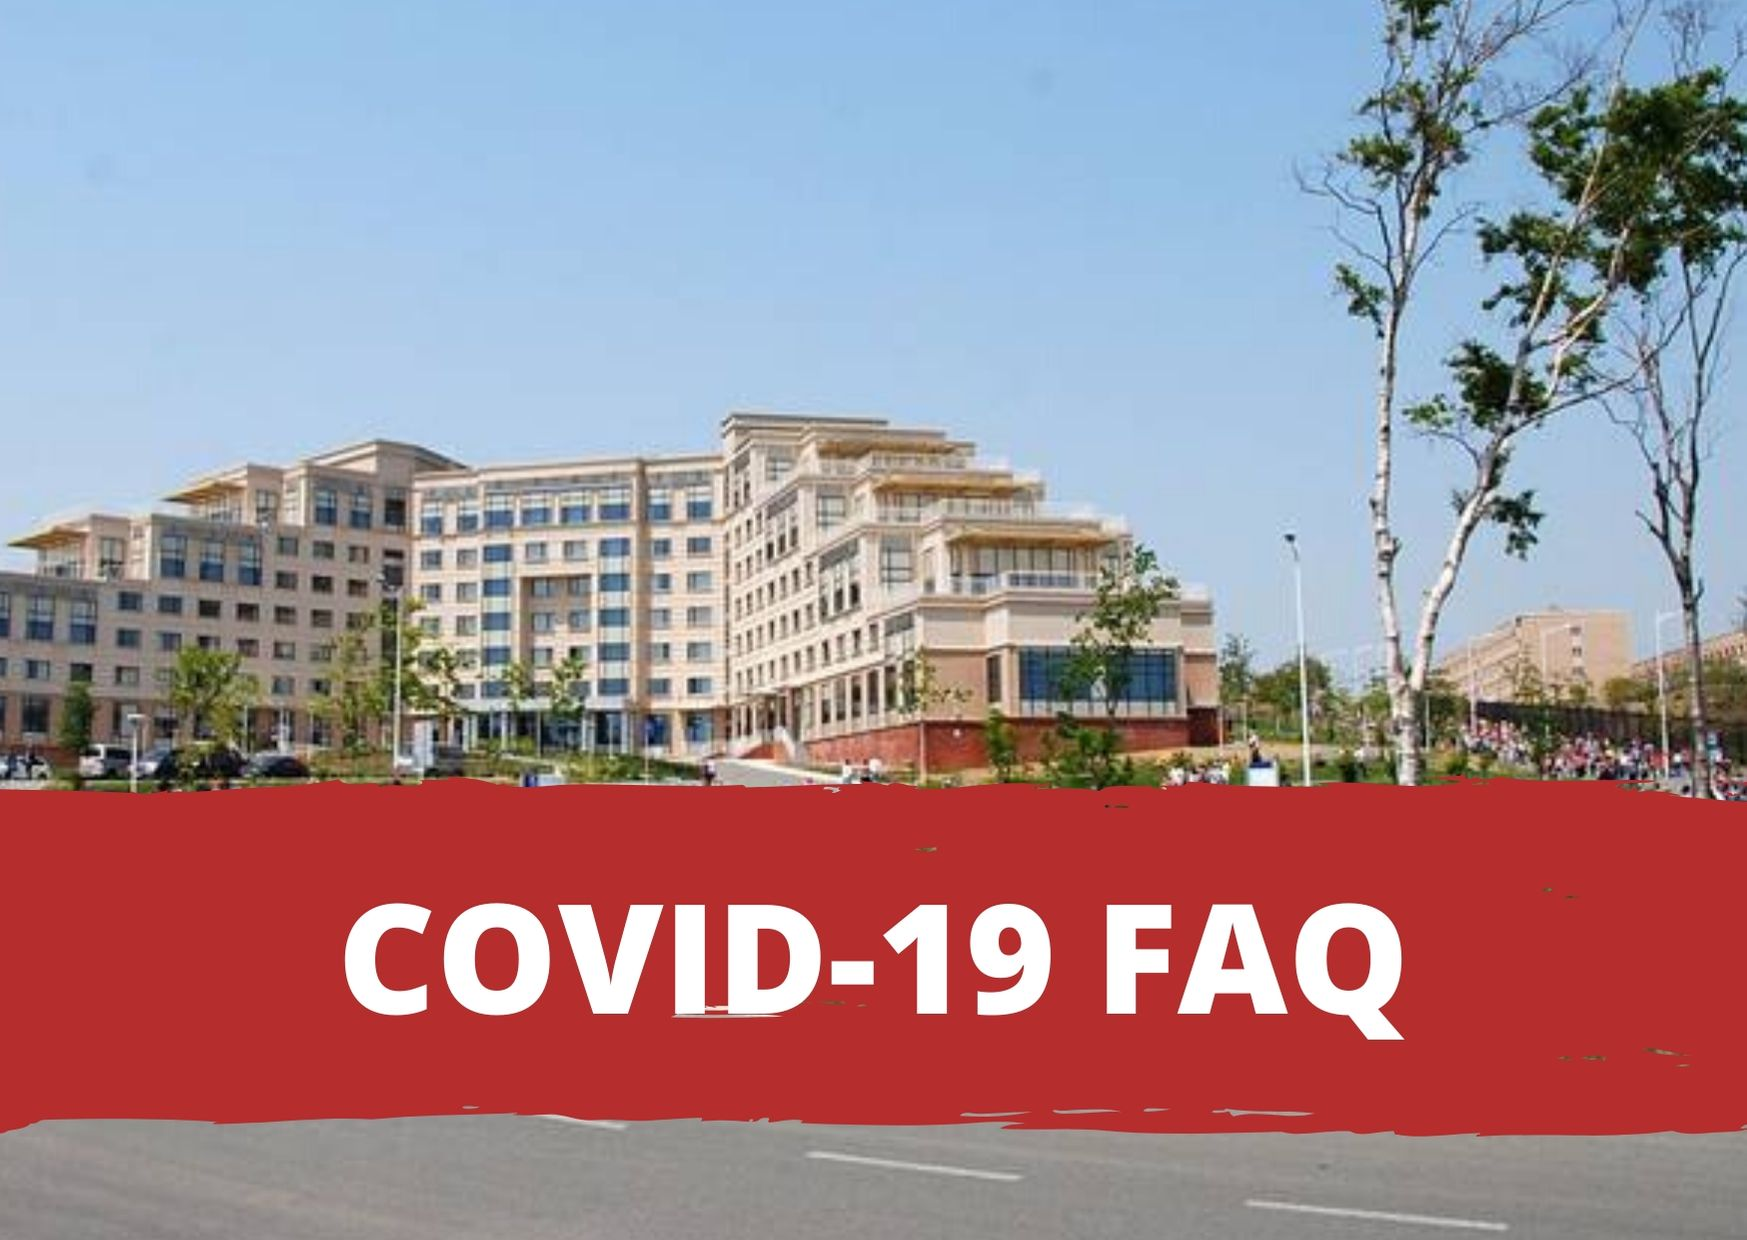 Frequently asked questions regarding COVID-19